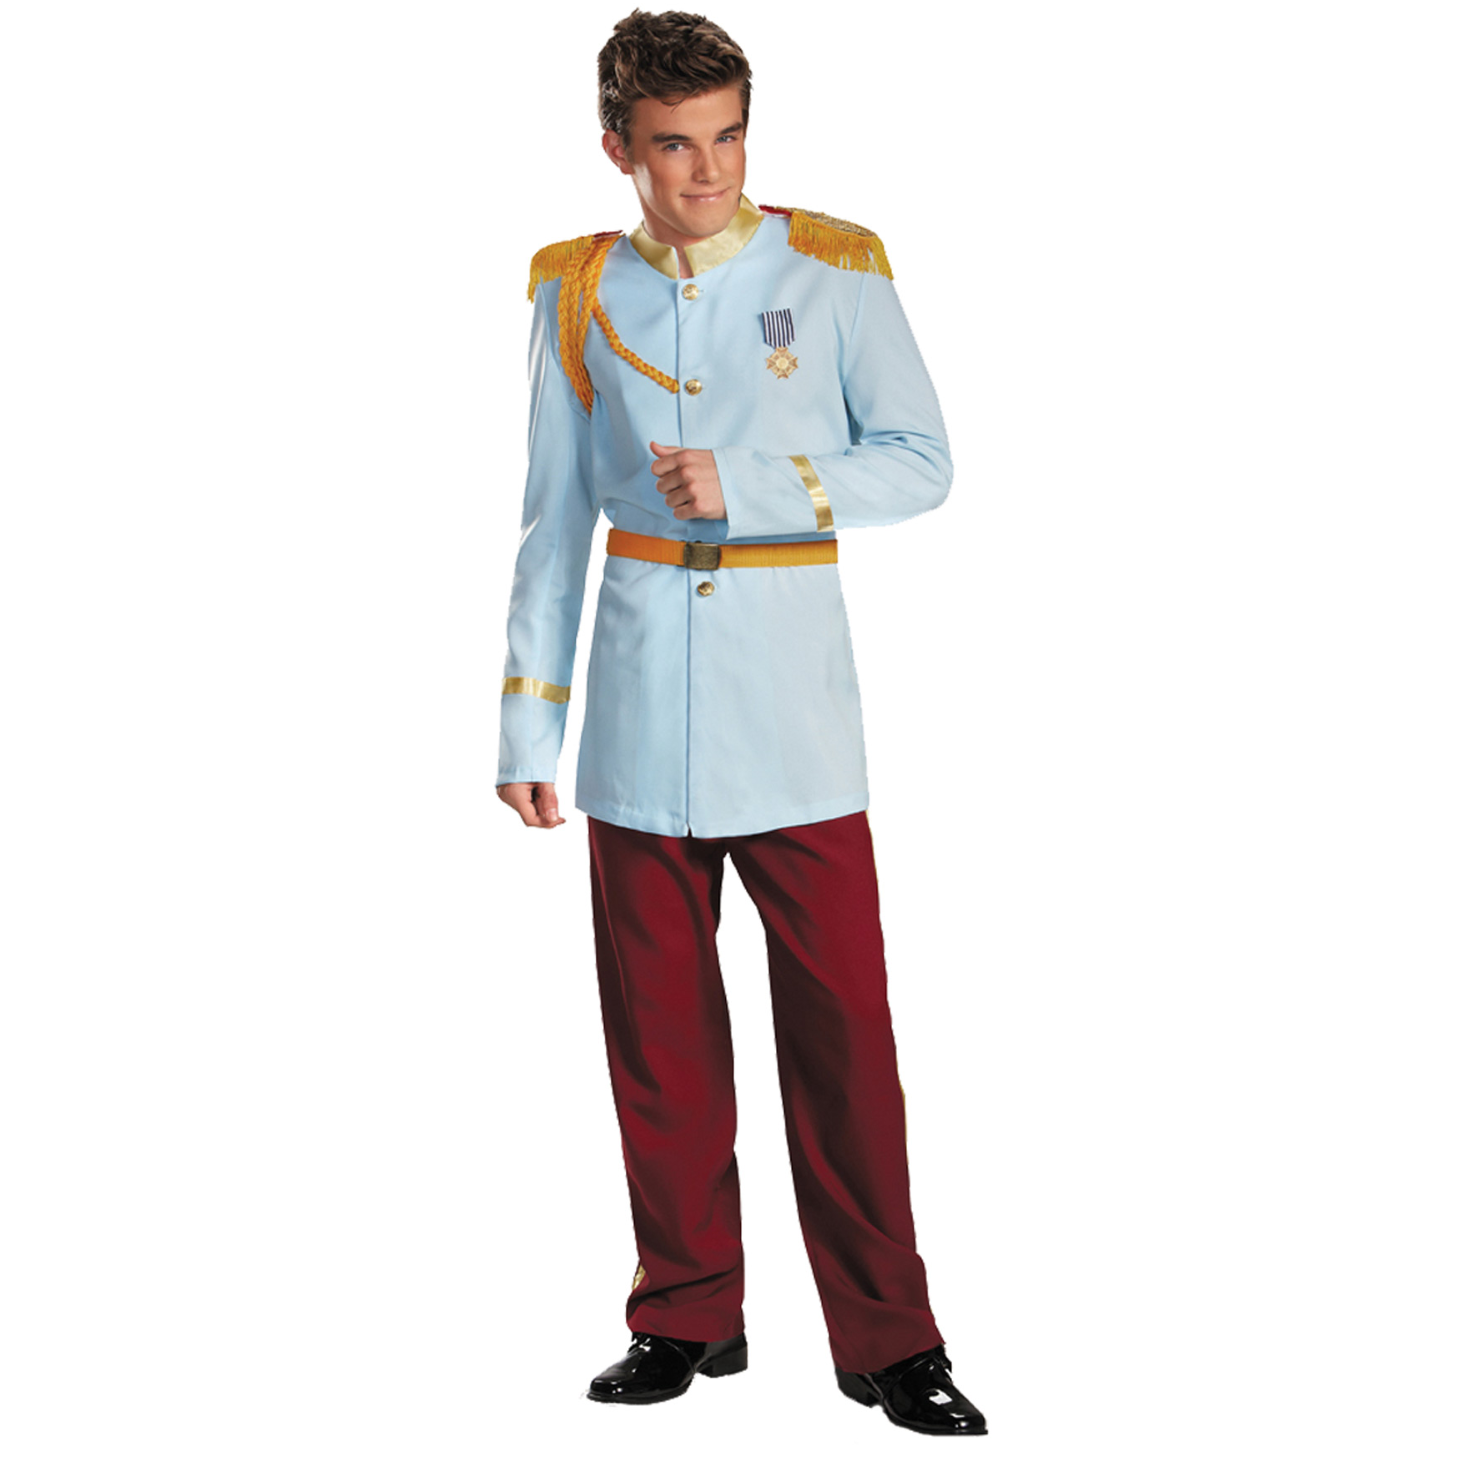 disney s prince charming costume costume ideas